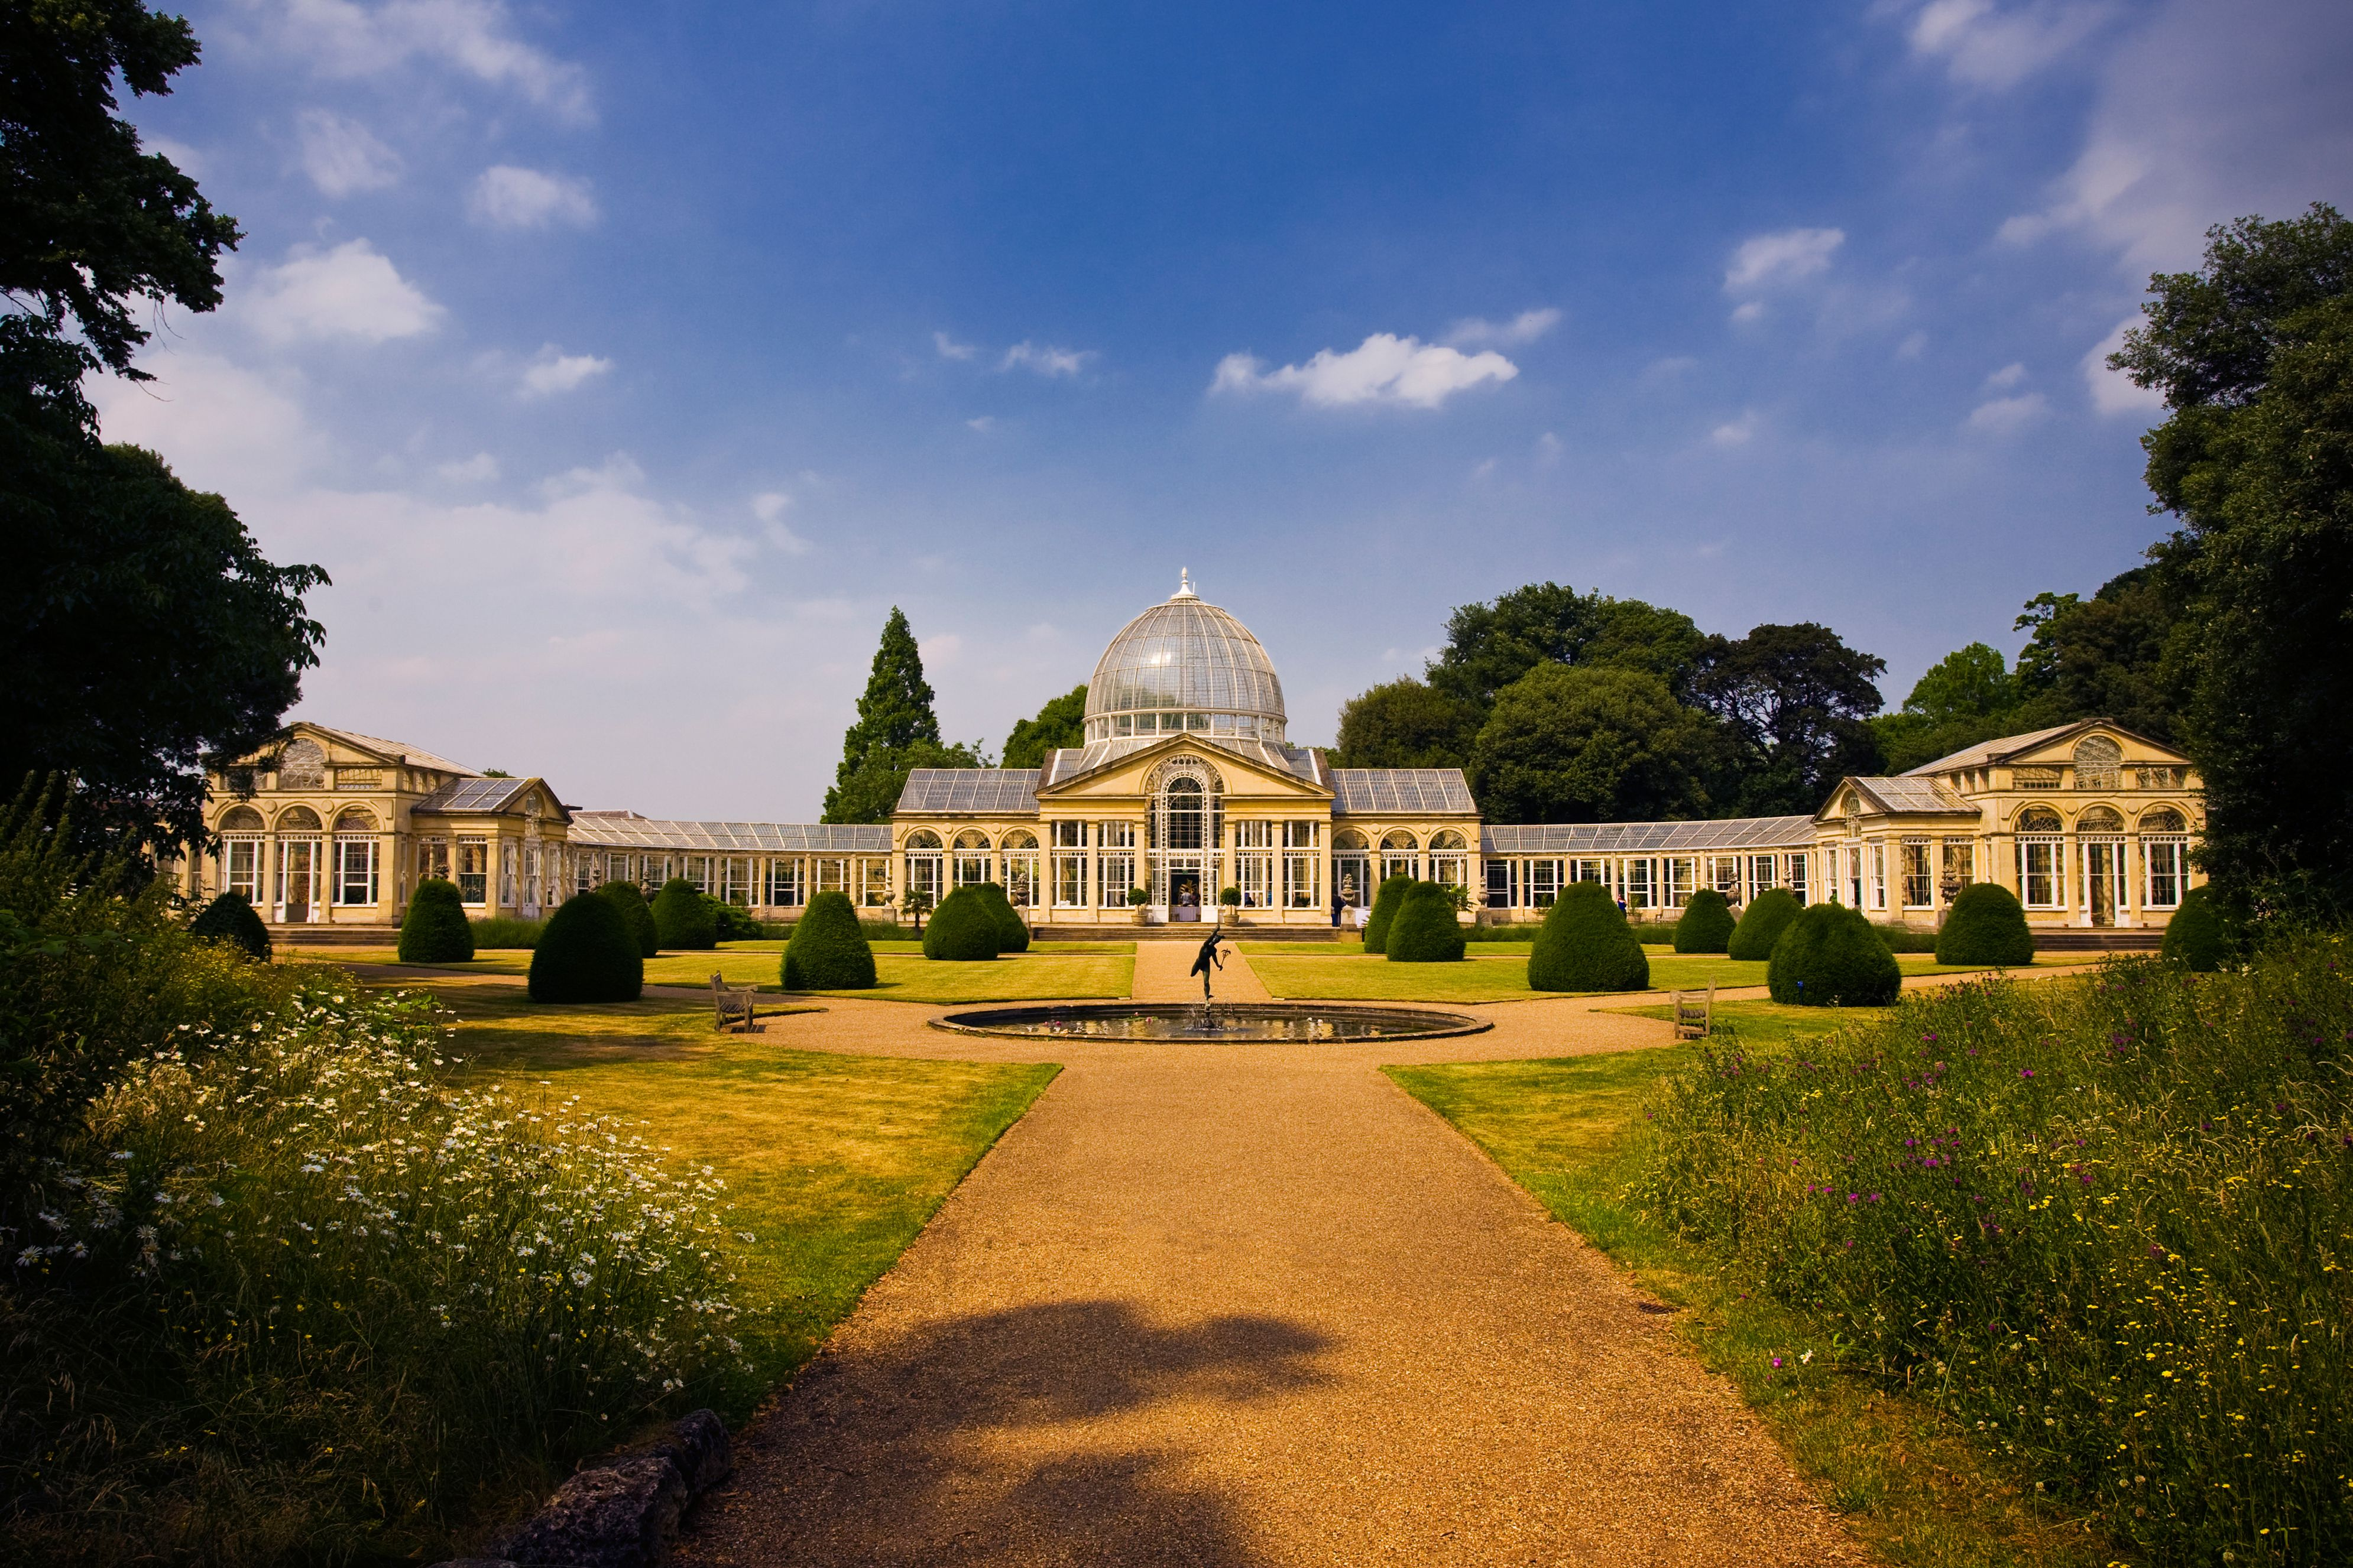 Syon House, Brentford, Middlesex, London, England